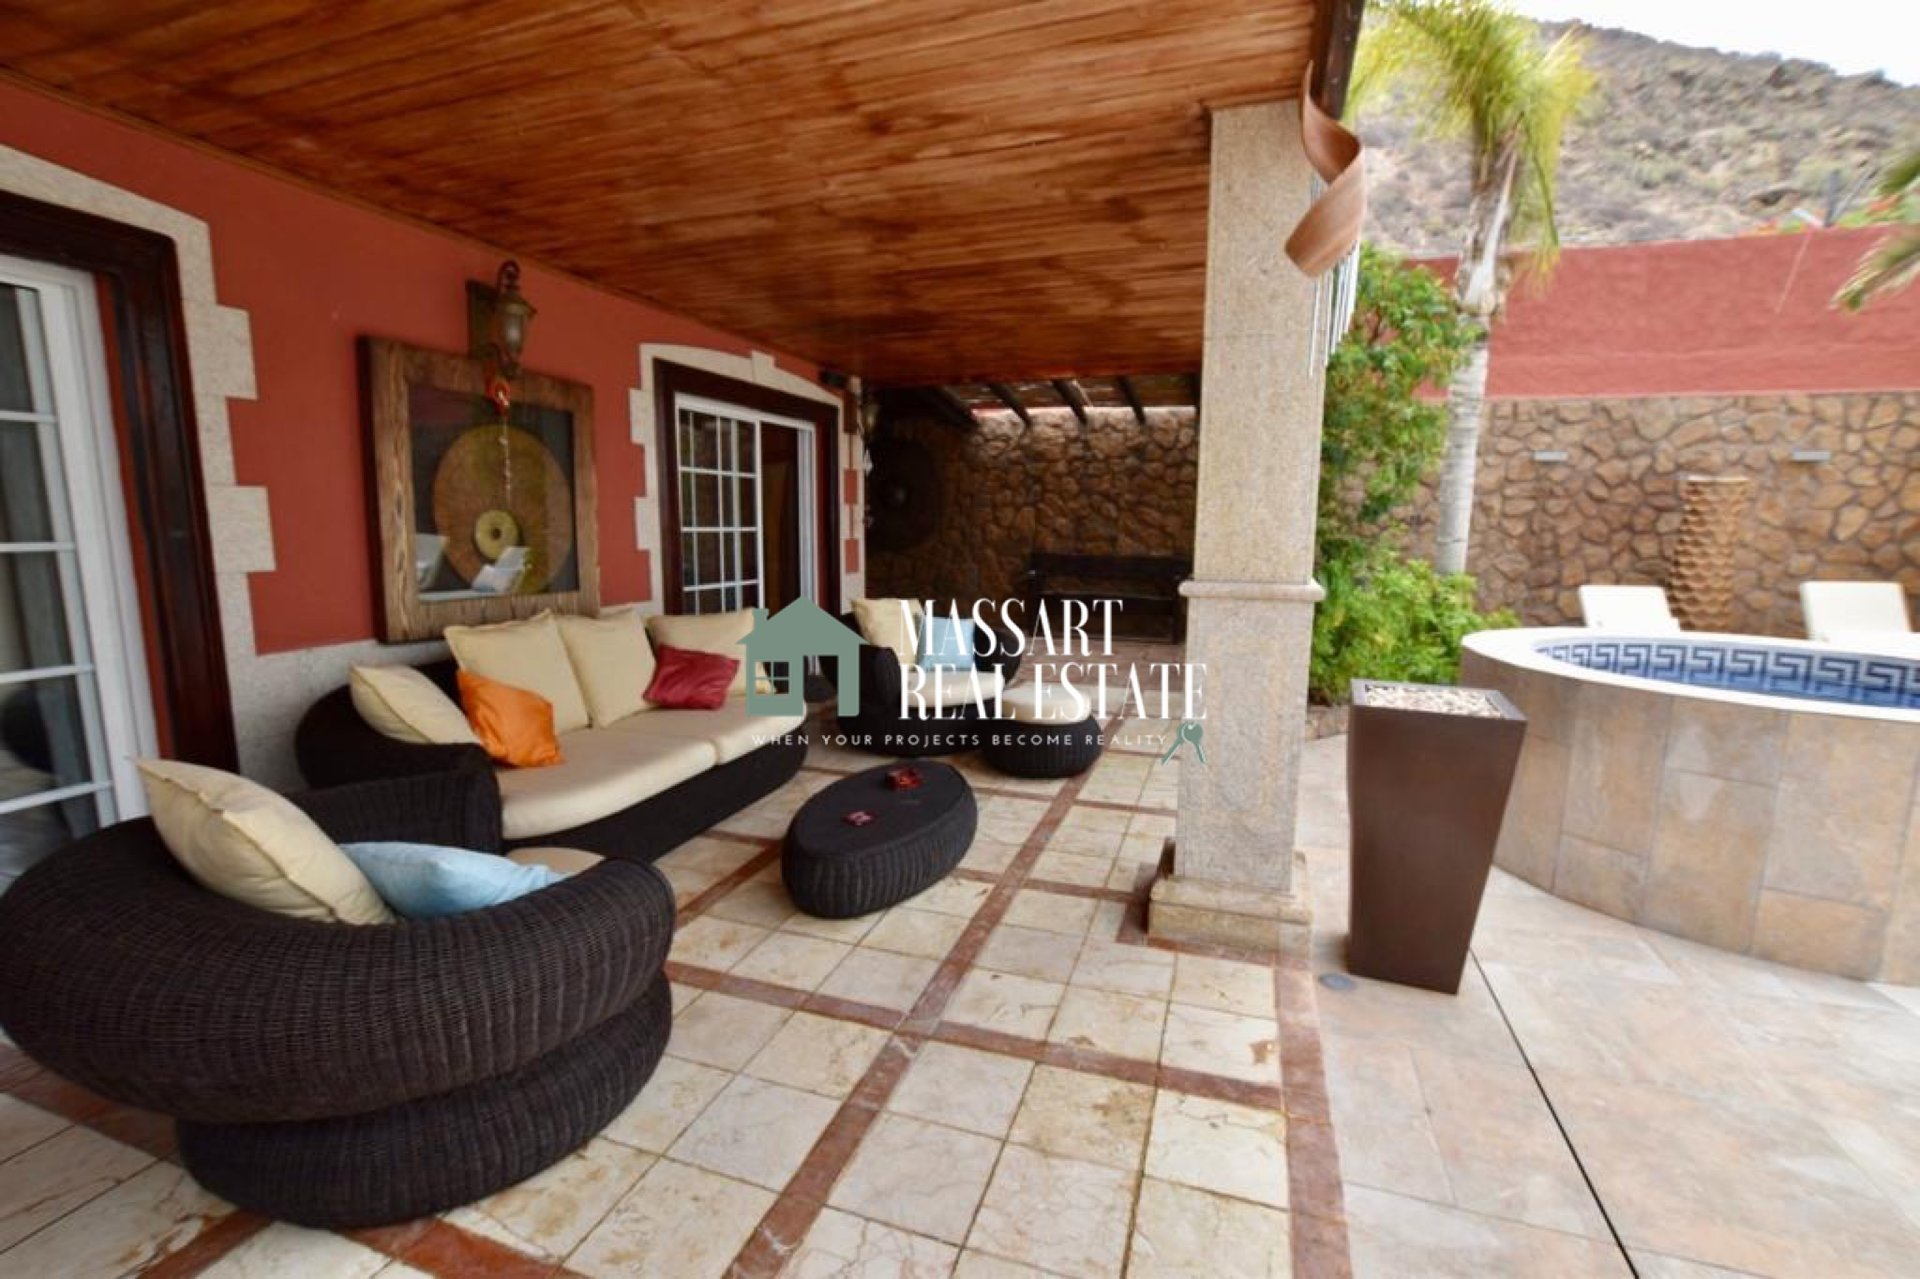 A Magnificent and luxurious independent villa of 420 m2 distributed over two floors and located in the central area of Los Cristianos.